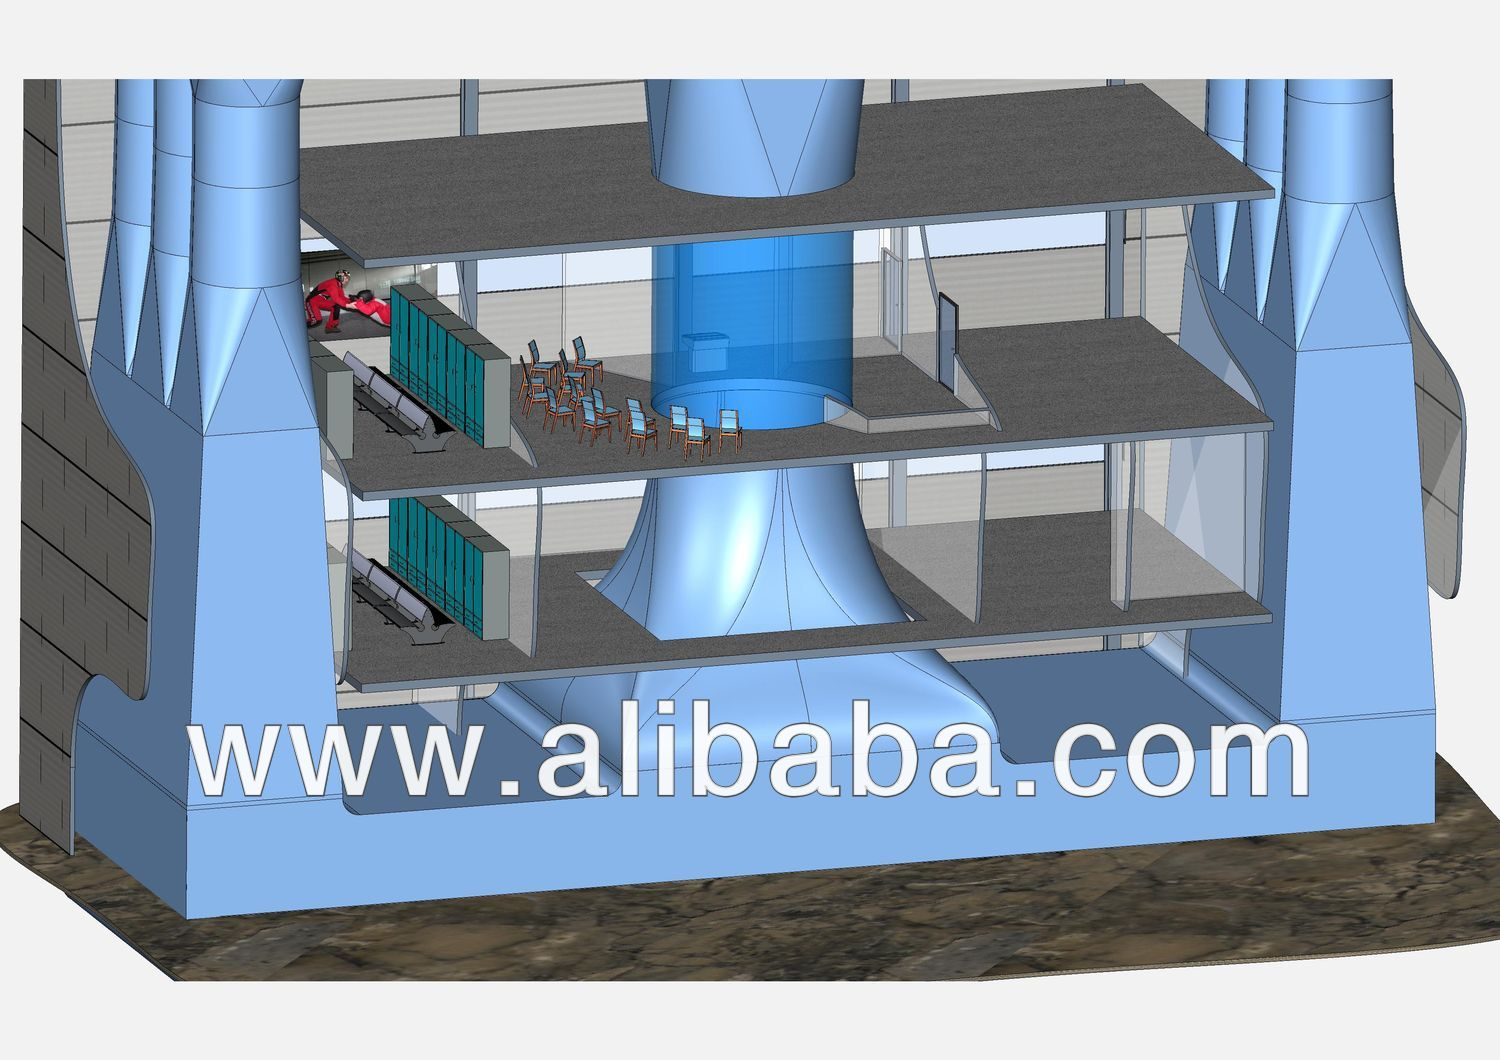 Free Fall Simulator Vertical Wind Tunnel For Indoor Skydiving Vwt Ffs 4372 Find Complete Details About Free Indoor Skydiving Water Play Equipment Indoor Fun